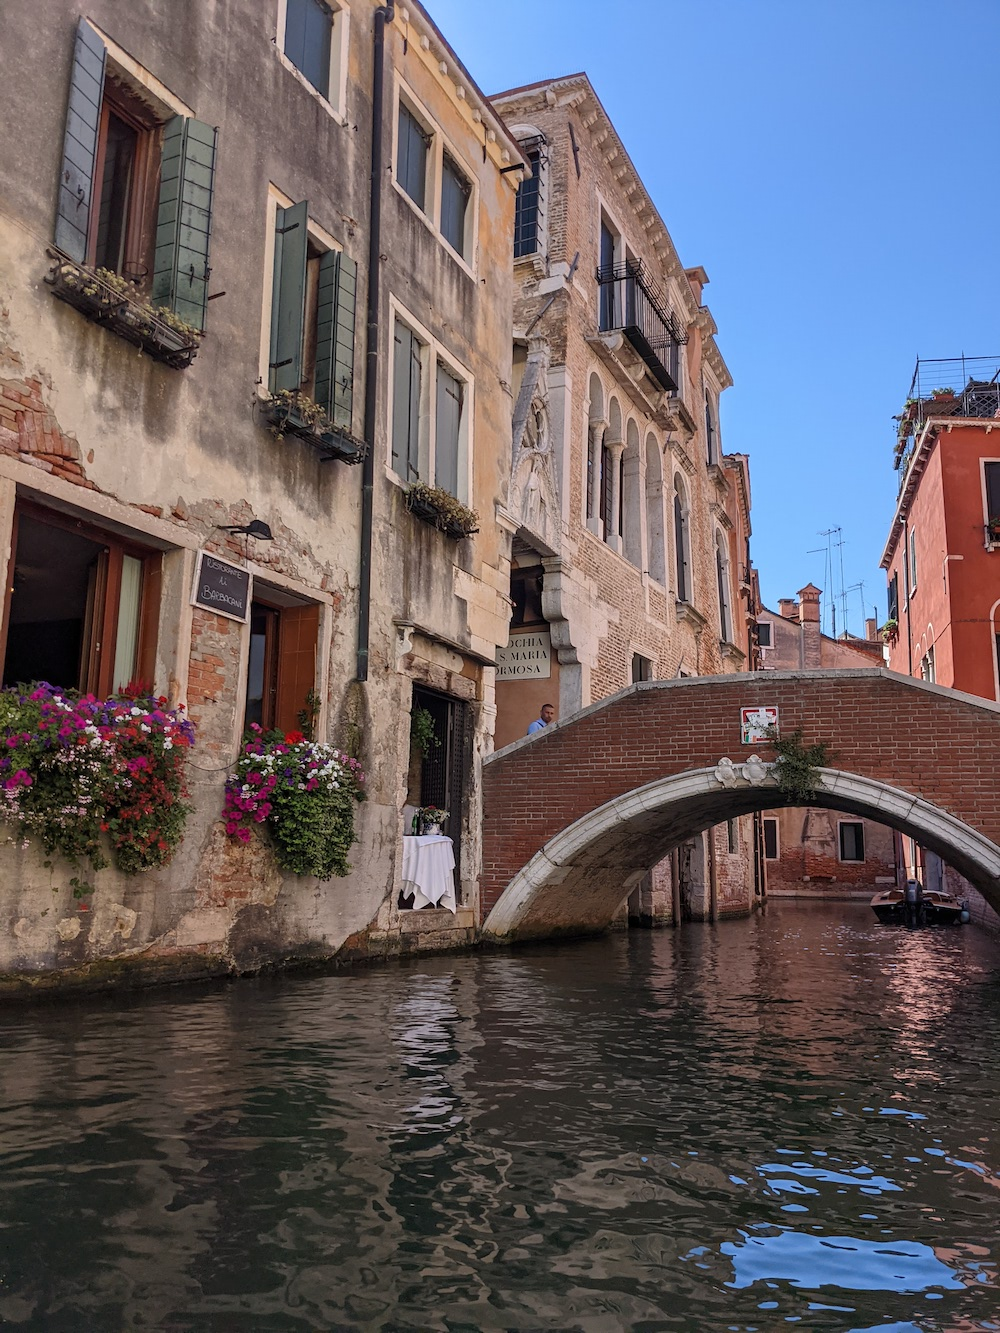 Charming Venice Canal with restaurant and bridge